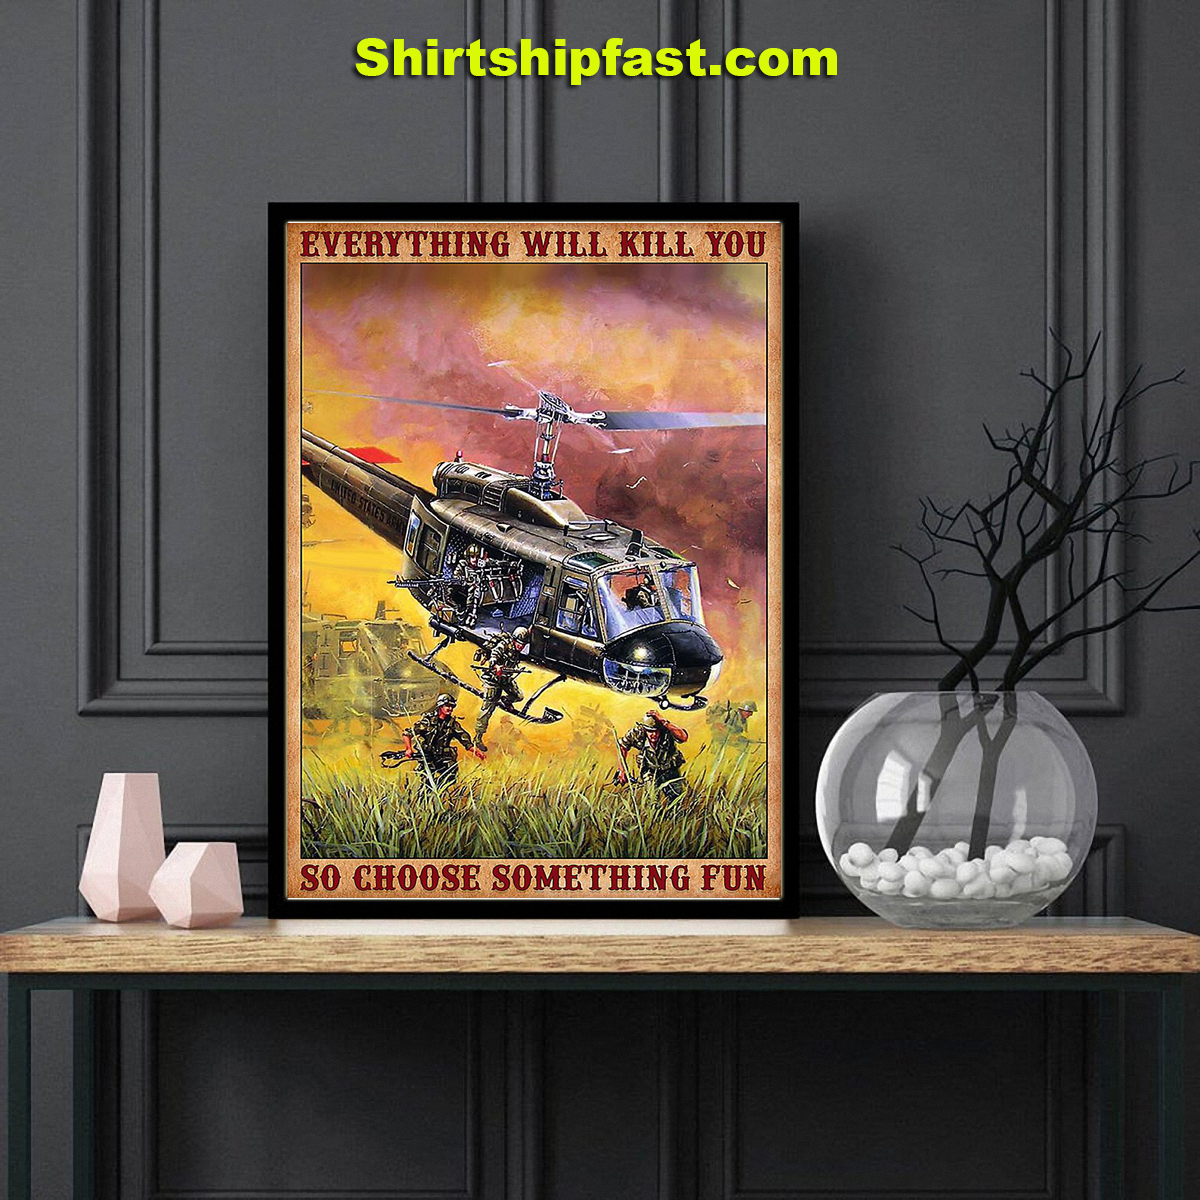 Vietnam outlaws huey helicopter everything will kill you so choose something fun poster - Picture 3